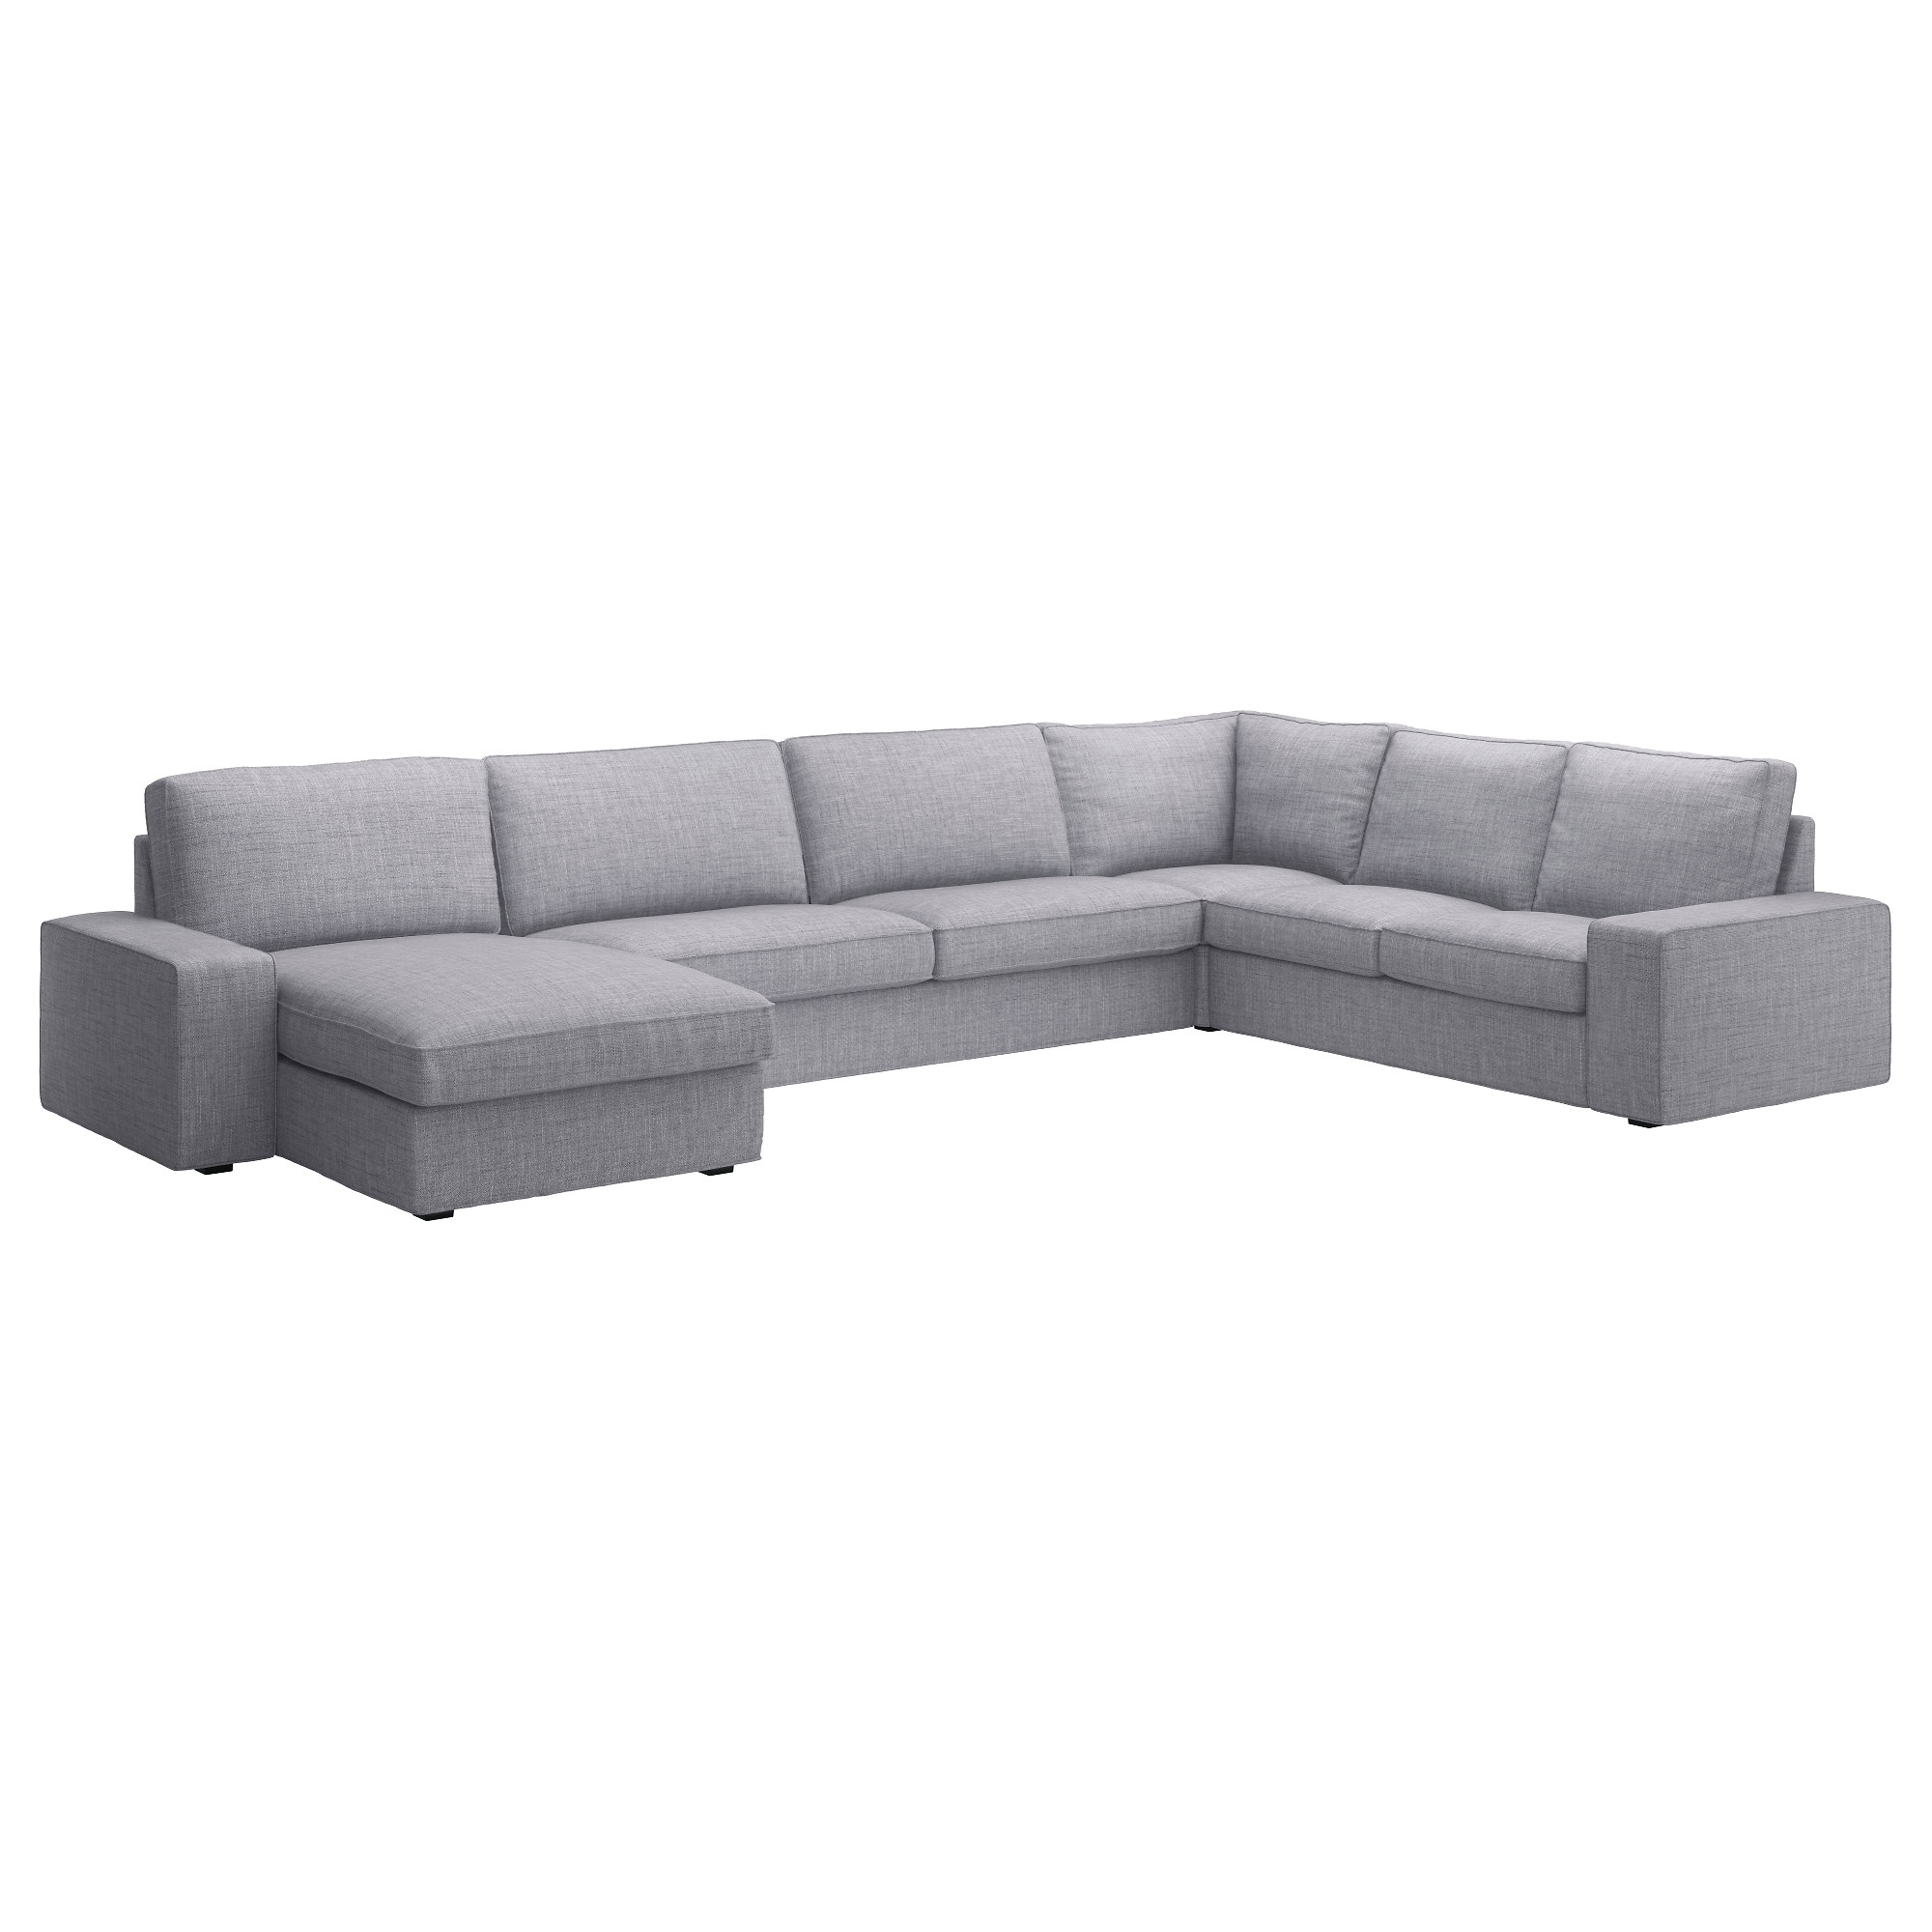 Well Known Sectional Sofas At Ikea With Kivik Sectional, 5 Seat Corner, Borred With Chaise, Borred Gray (View 20 of 20)